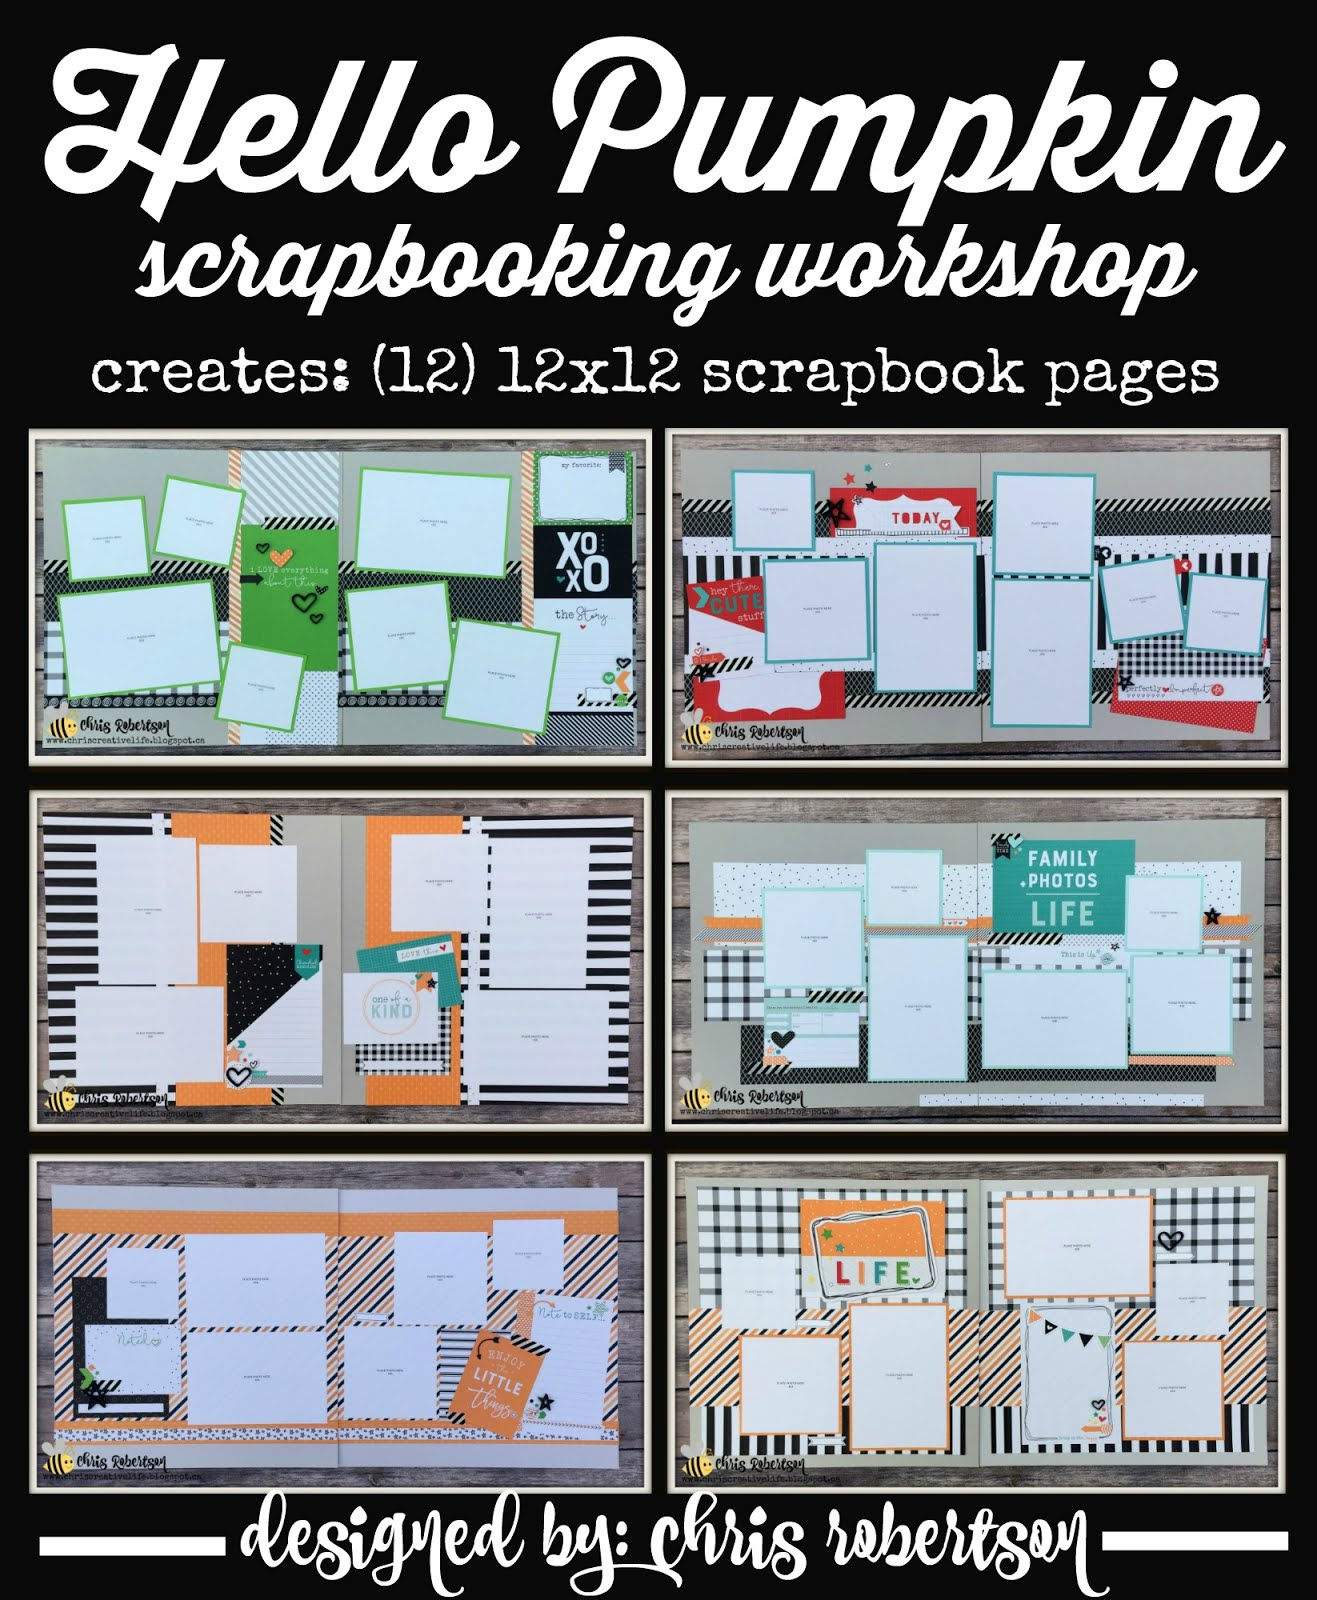 Hello Pumpkin Scrapbooking